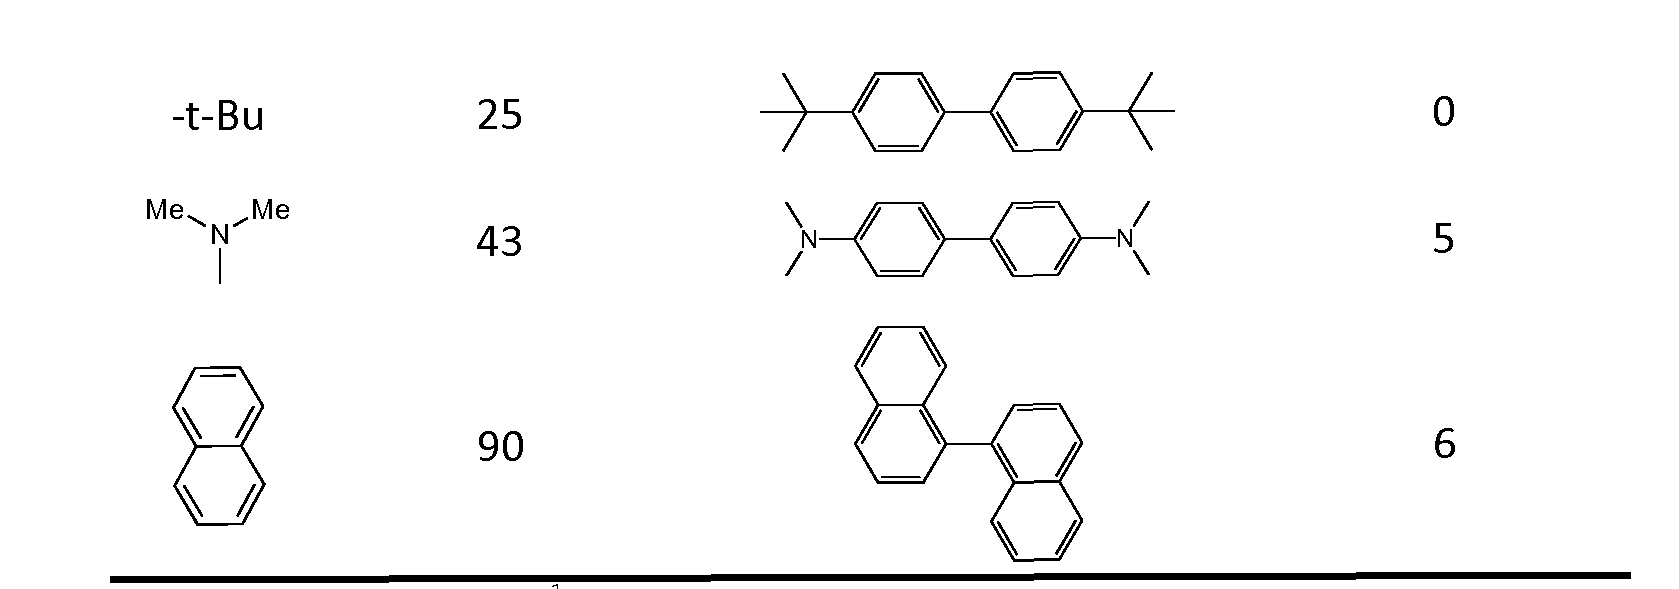 so4 2-lewis structure resonance - 1679×589